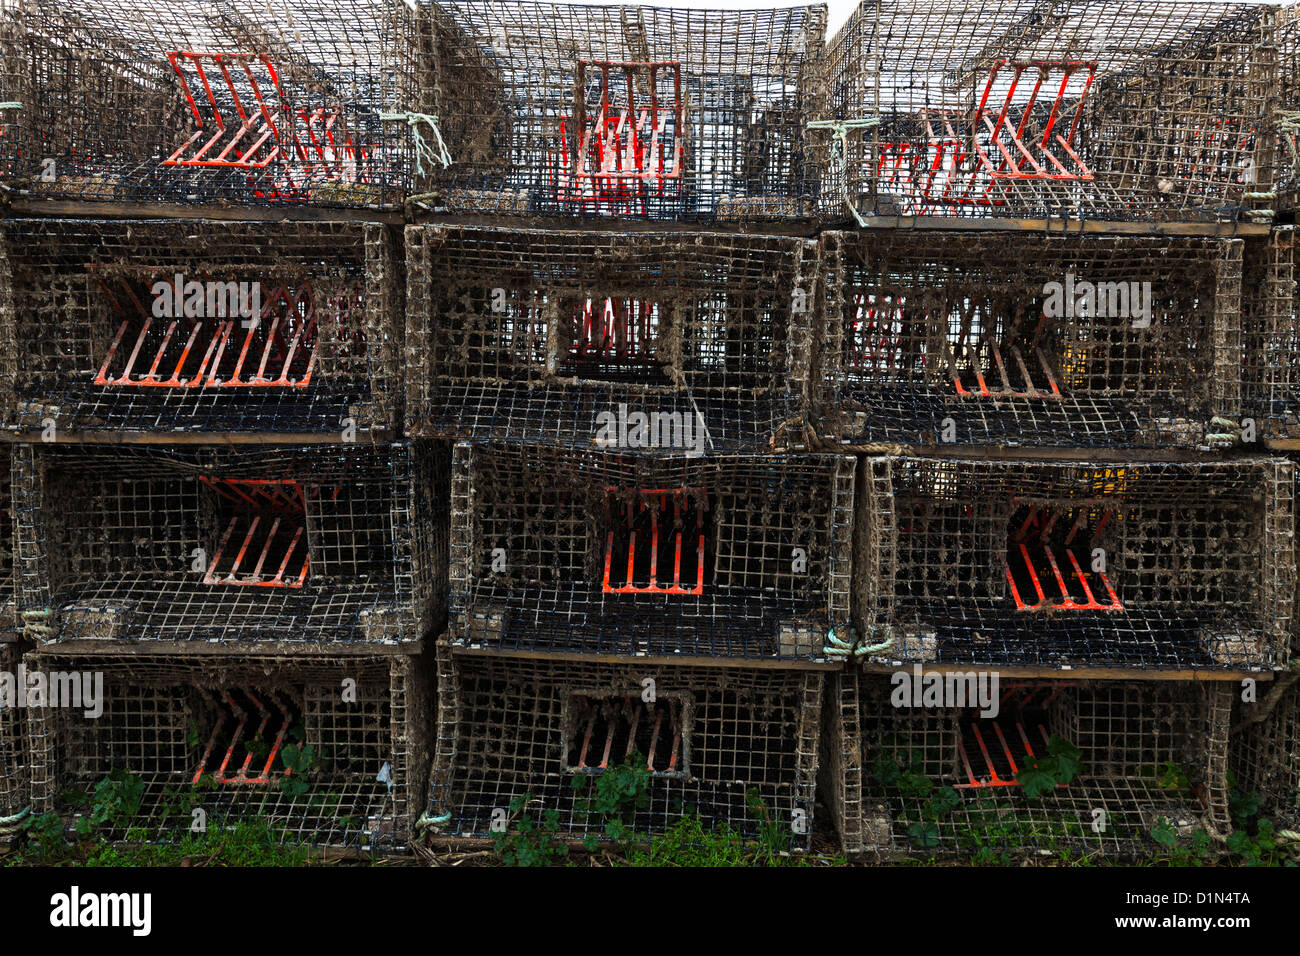 rectangular lobster pots stacked on the beach at Warsash - Stock Image